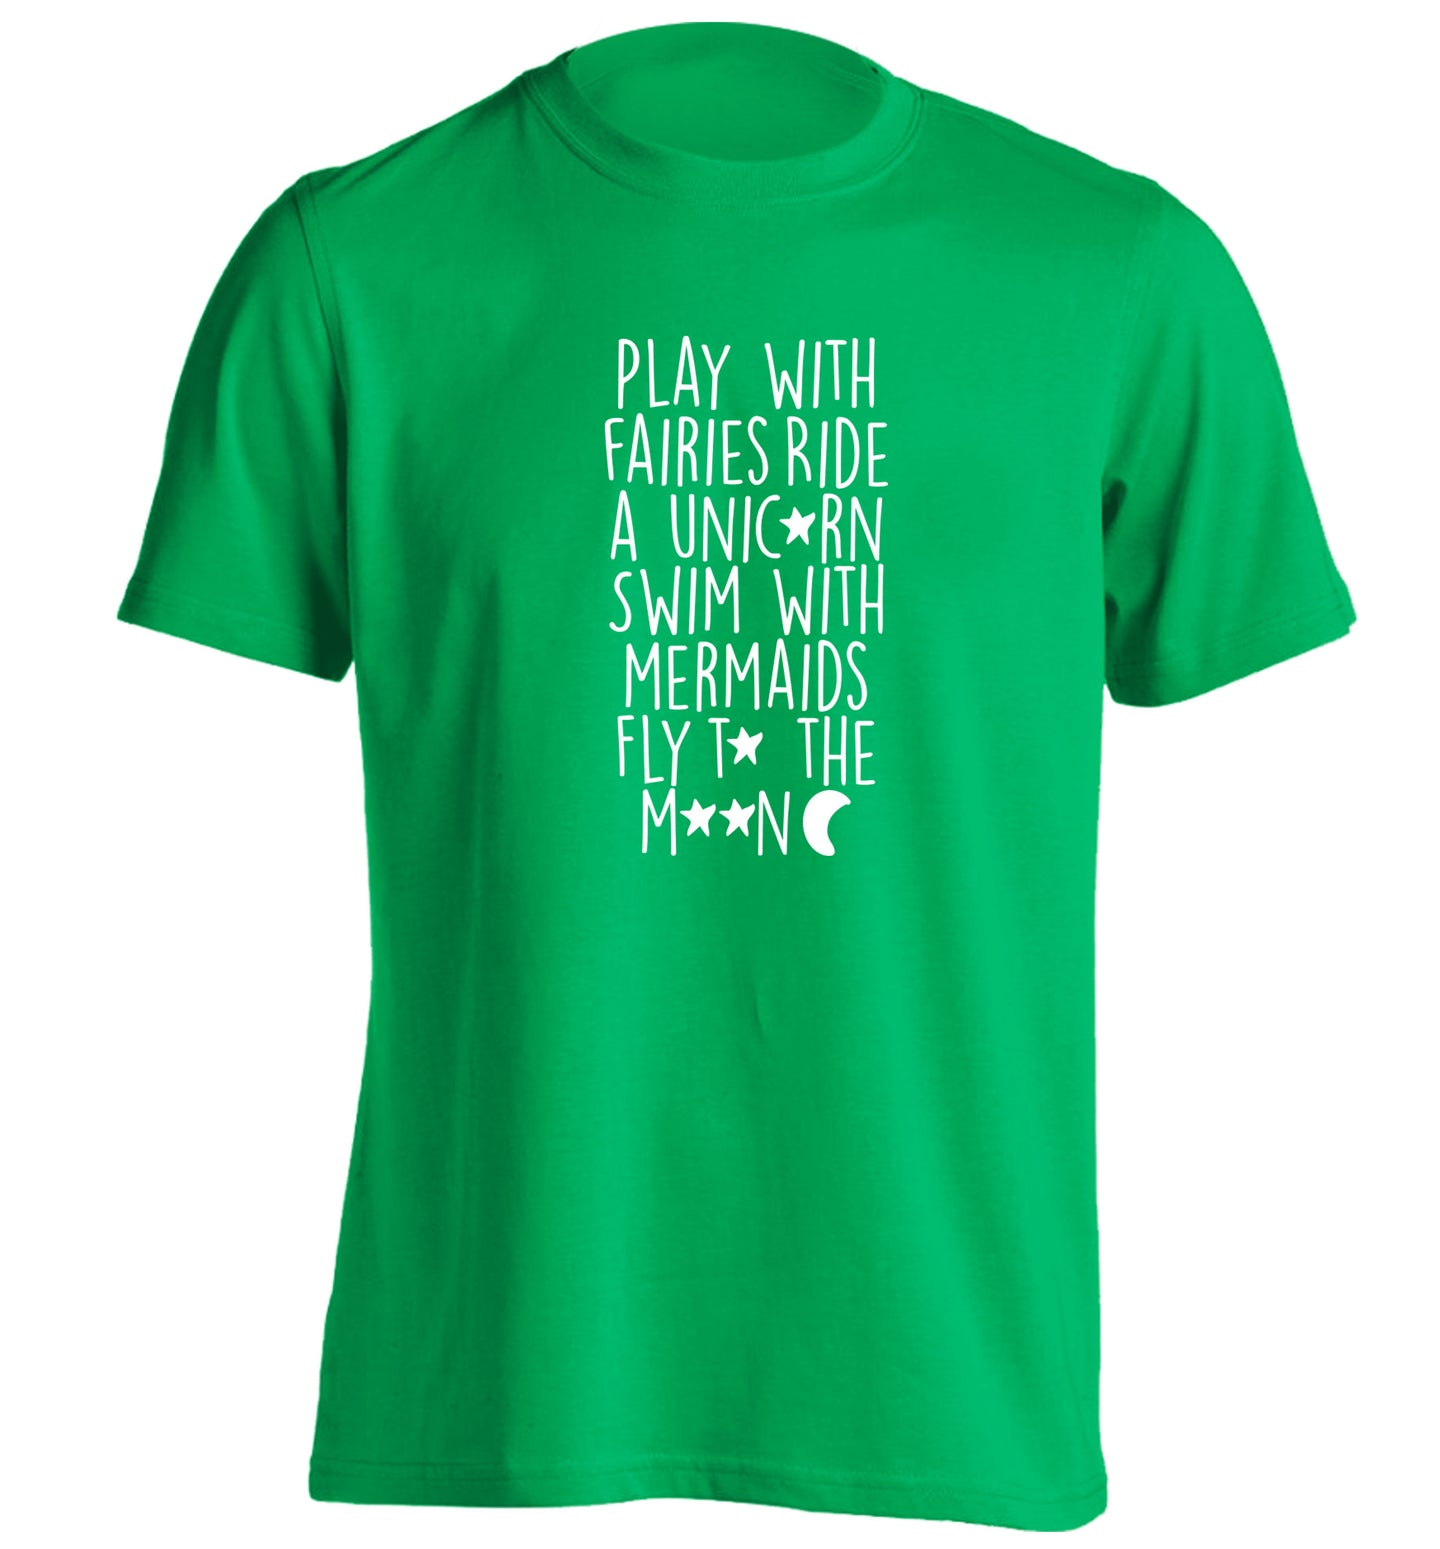 Play with fairies ride a unicorn swim with mermaids fly to the moon adults unisex green Tshirt 2XL